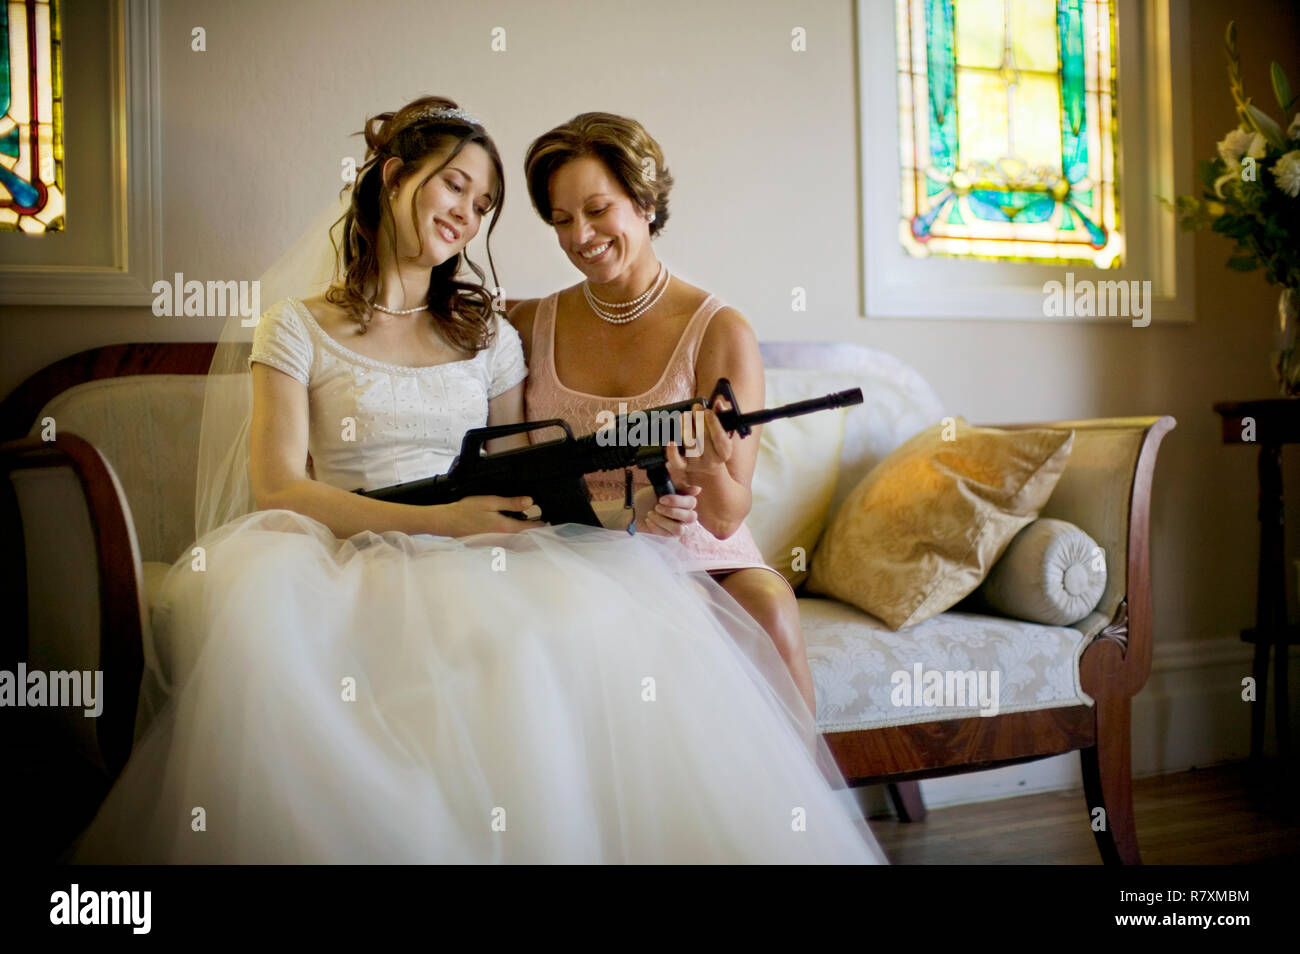 Young Bride And Her Mother Smiling While Holding A Machine